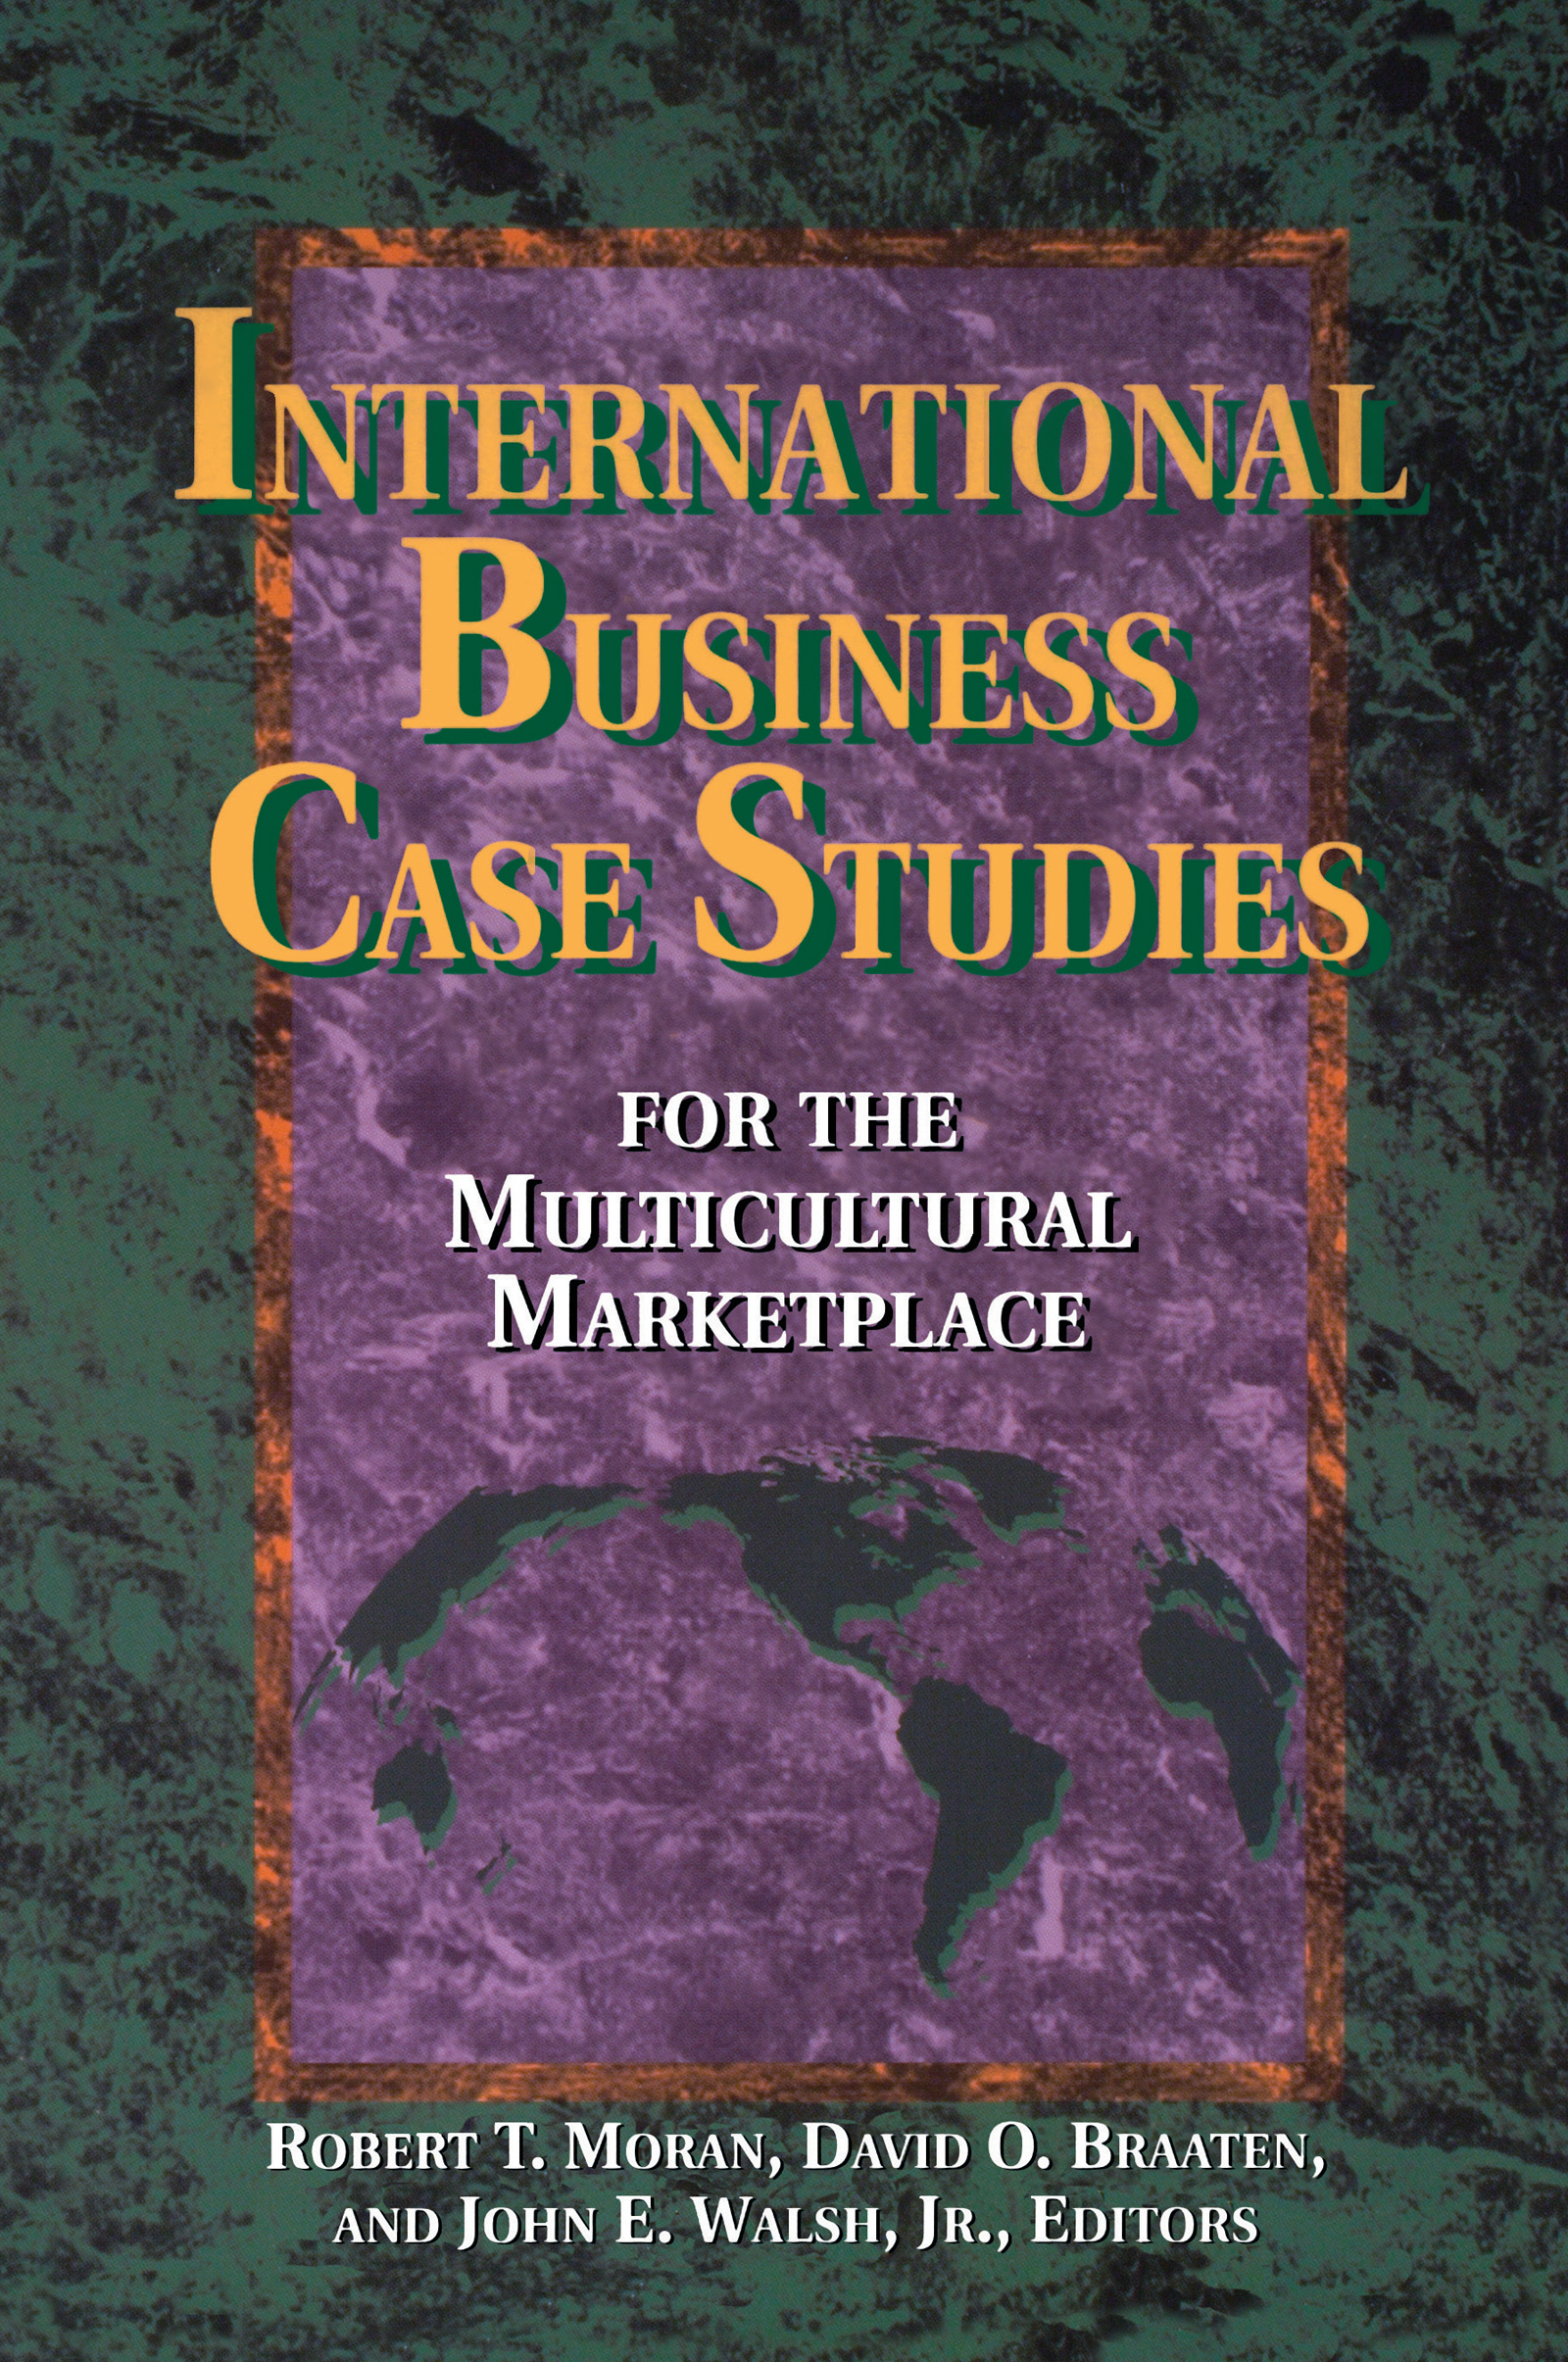 international business case study 2 International business case study 2 essay - part 2  describe ugandan cultural attributes that might affect the operations of a foreign company doing business there.